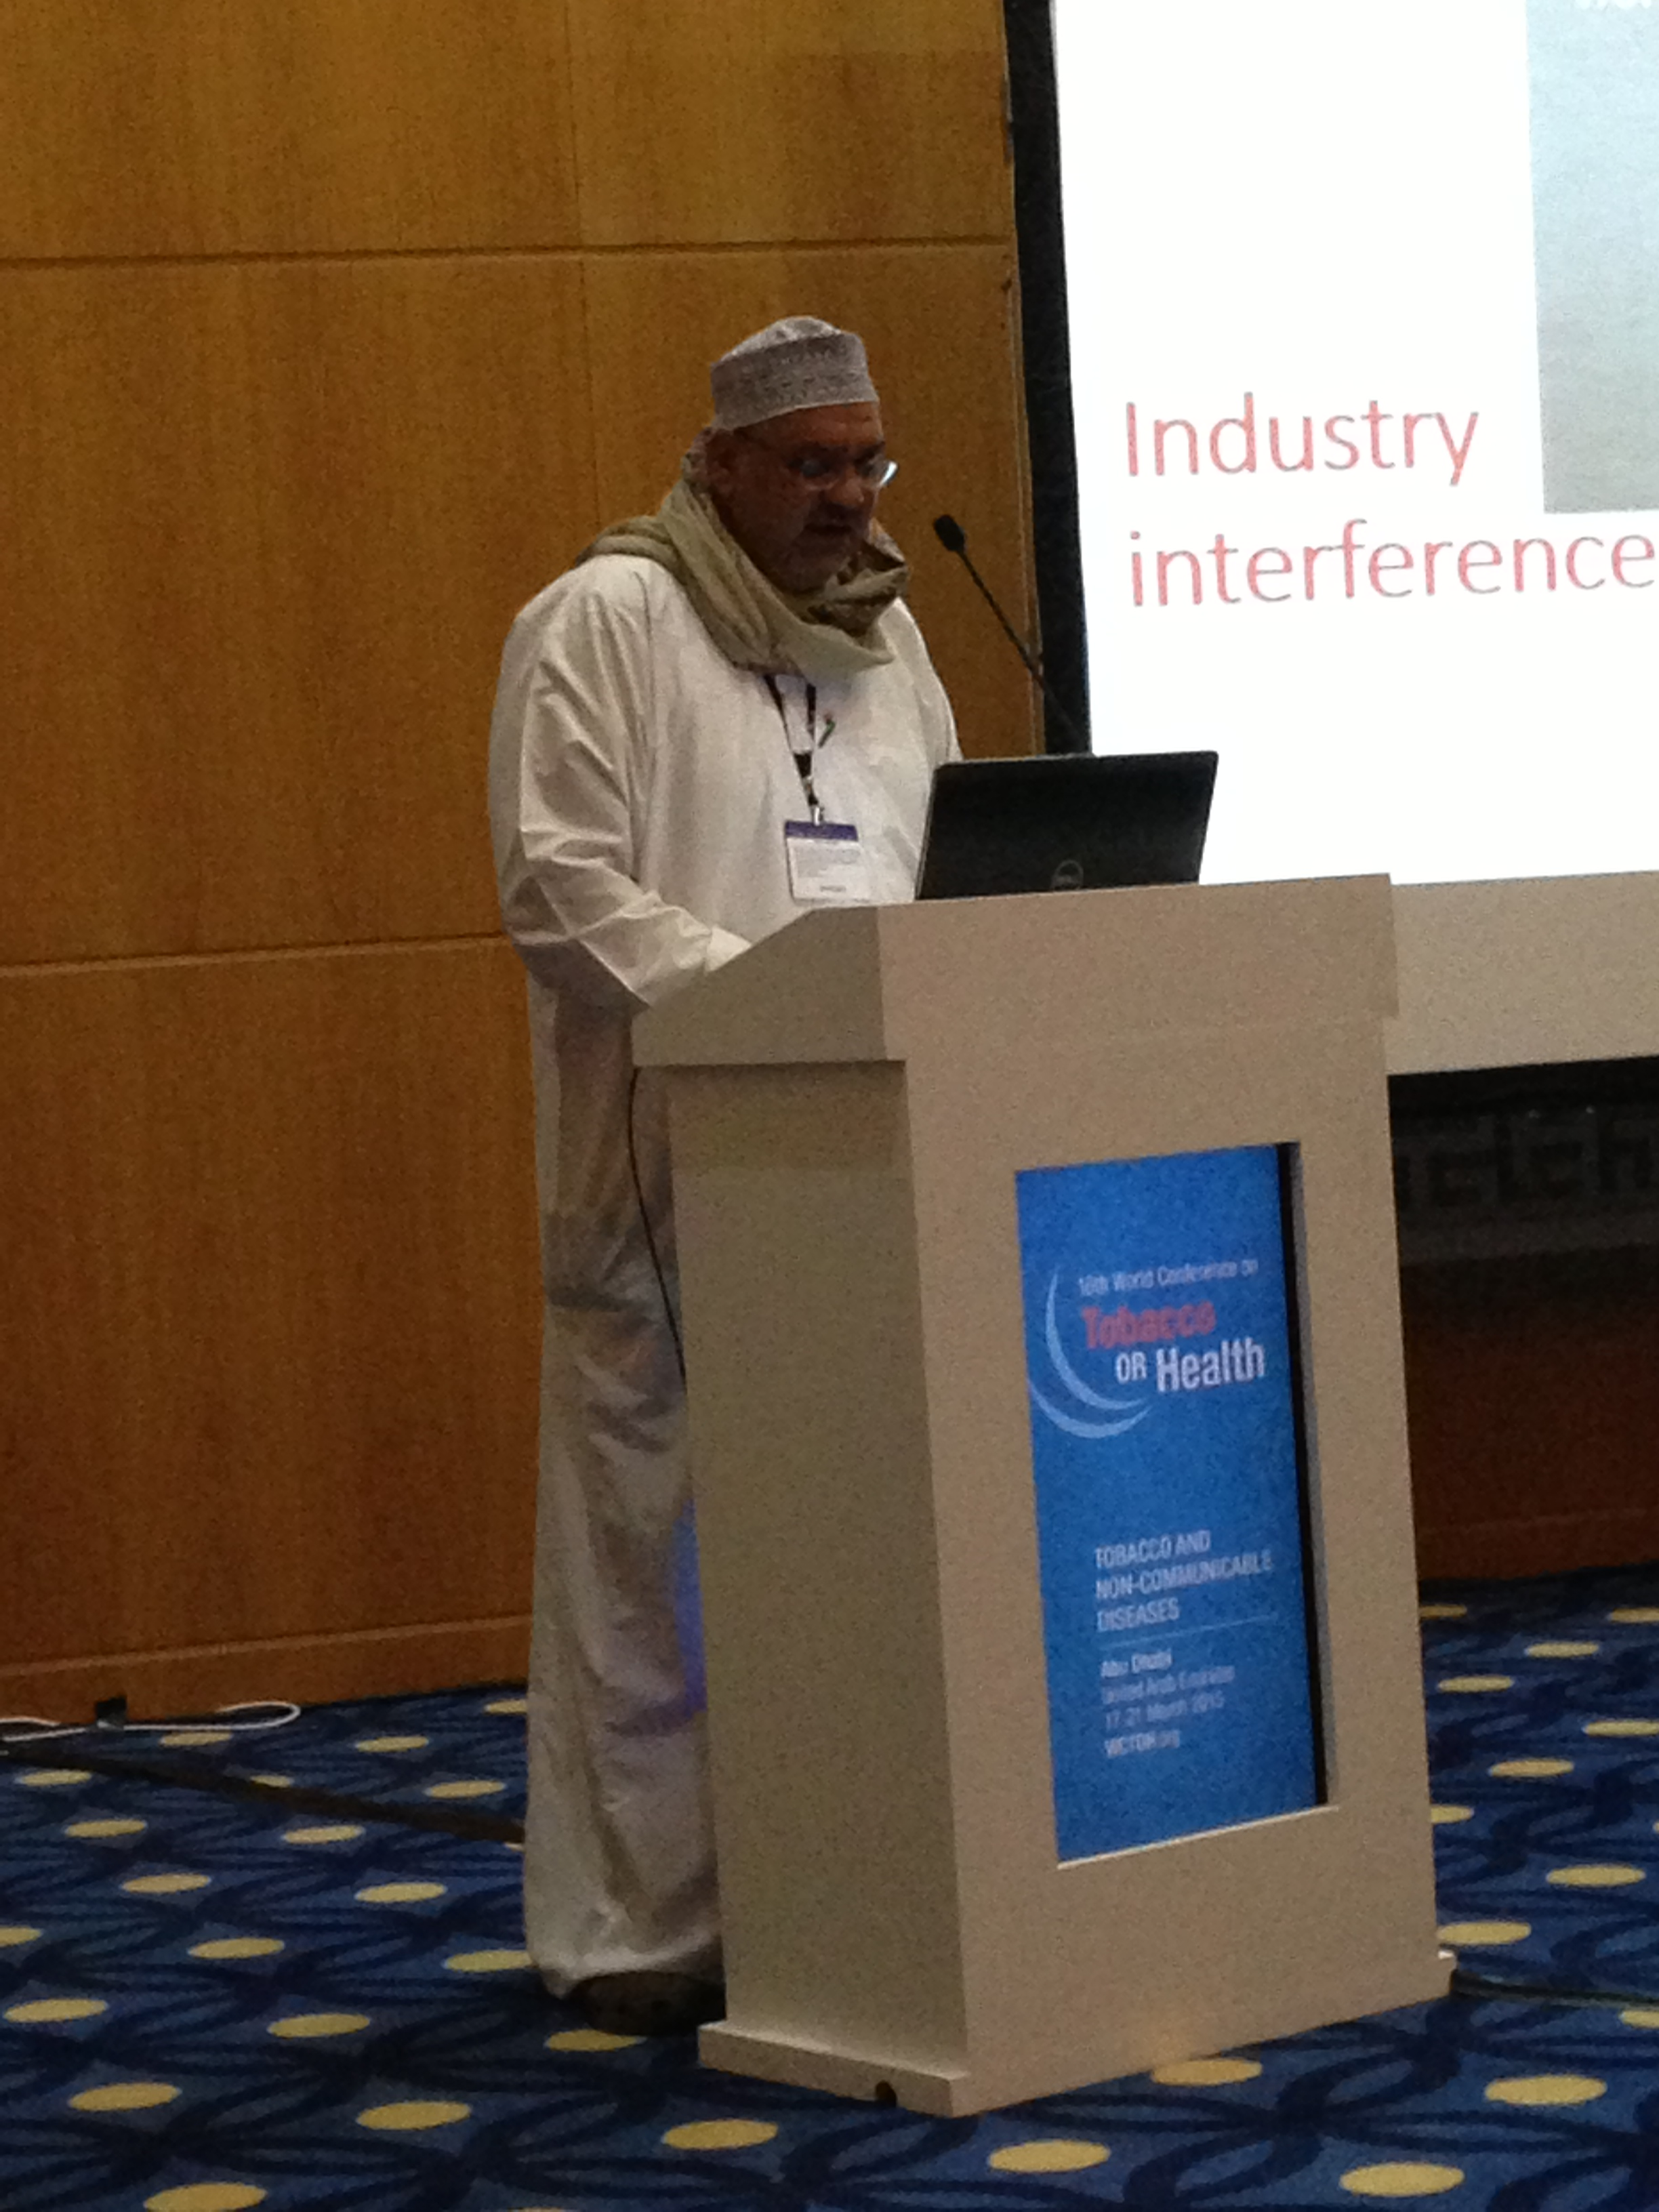 Impressions from the 16th World Conference on Tobacco or Health, Abu Dhabi, March 2015